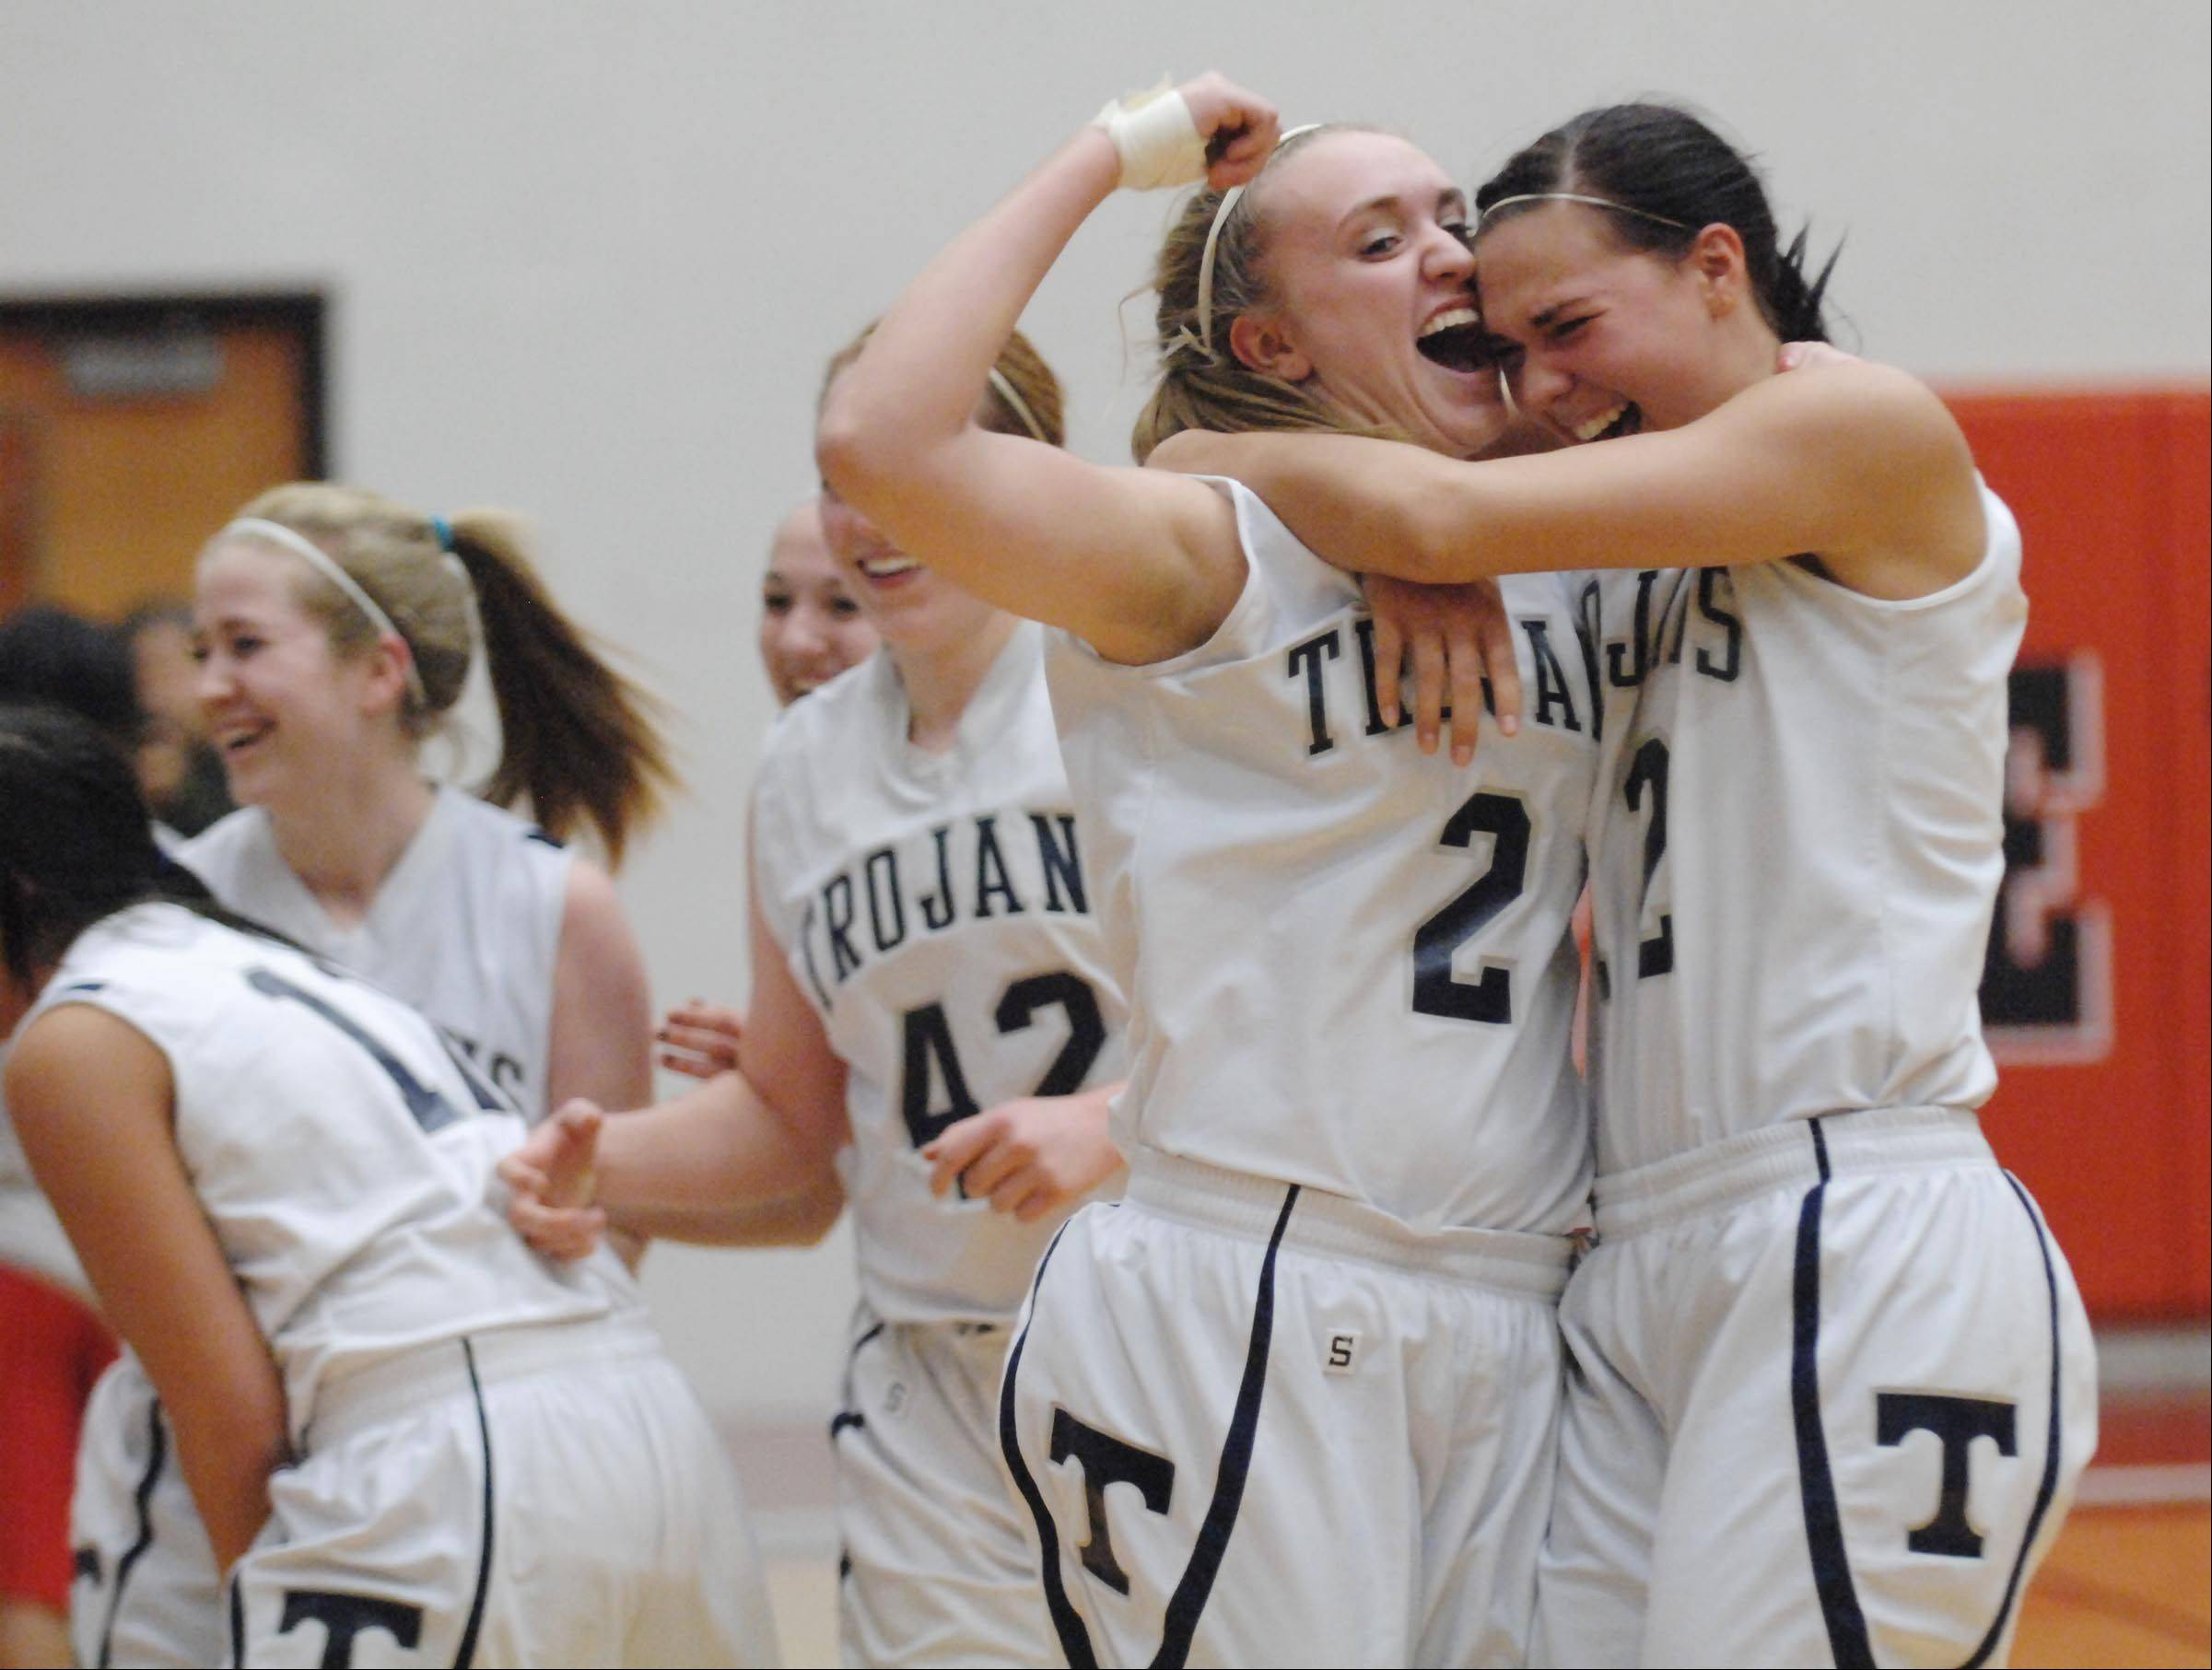 Cary-Grove's Katie Barker and Joslyn Nicholson, right, celebrate their win against South Elgin at Tuesday's McHenry sectional game.